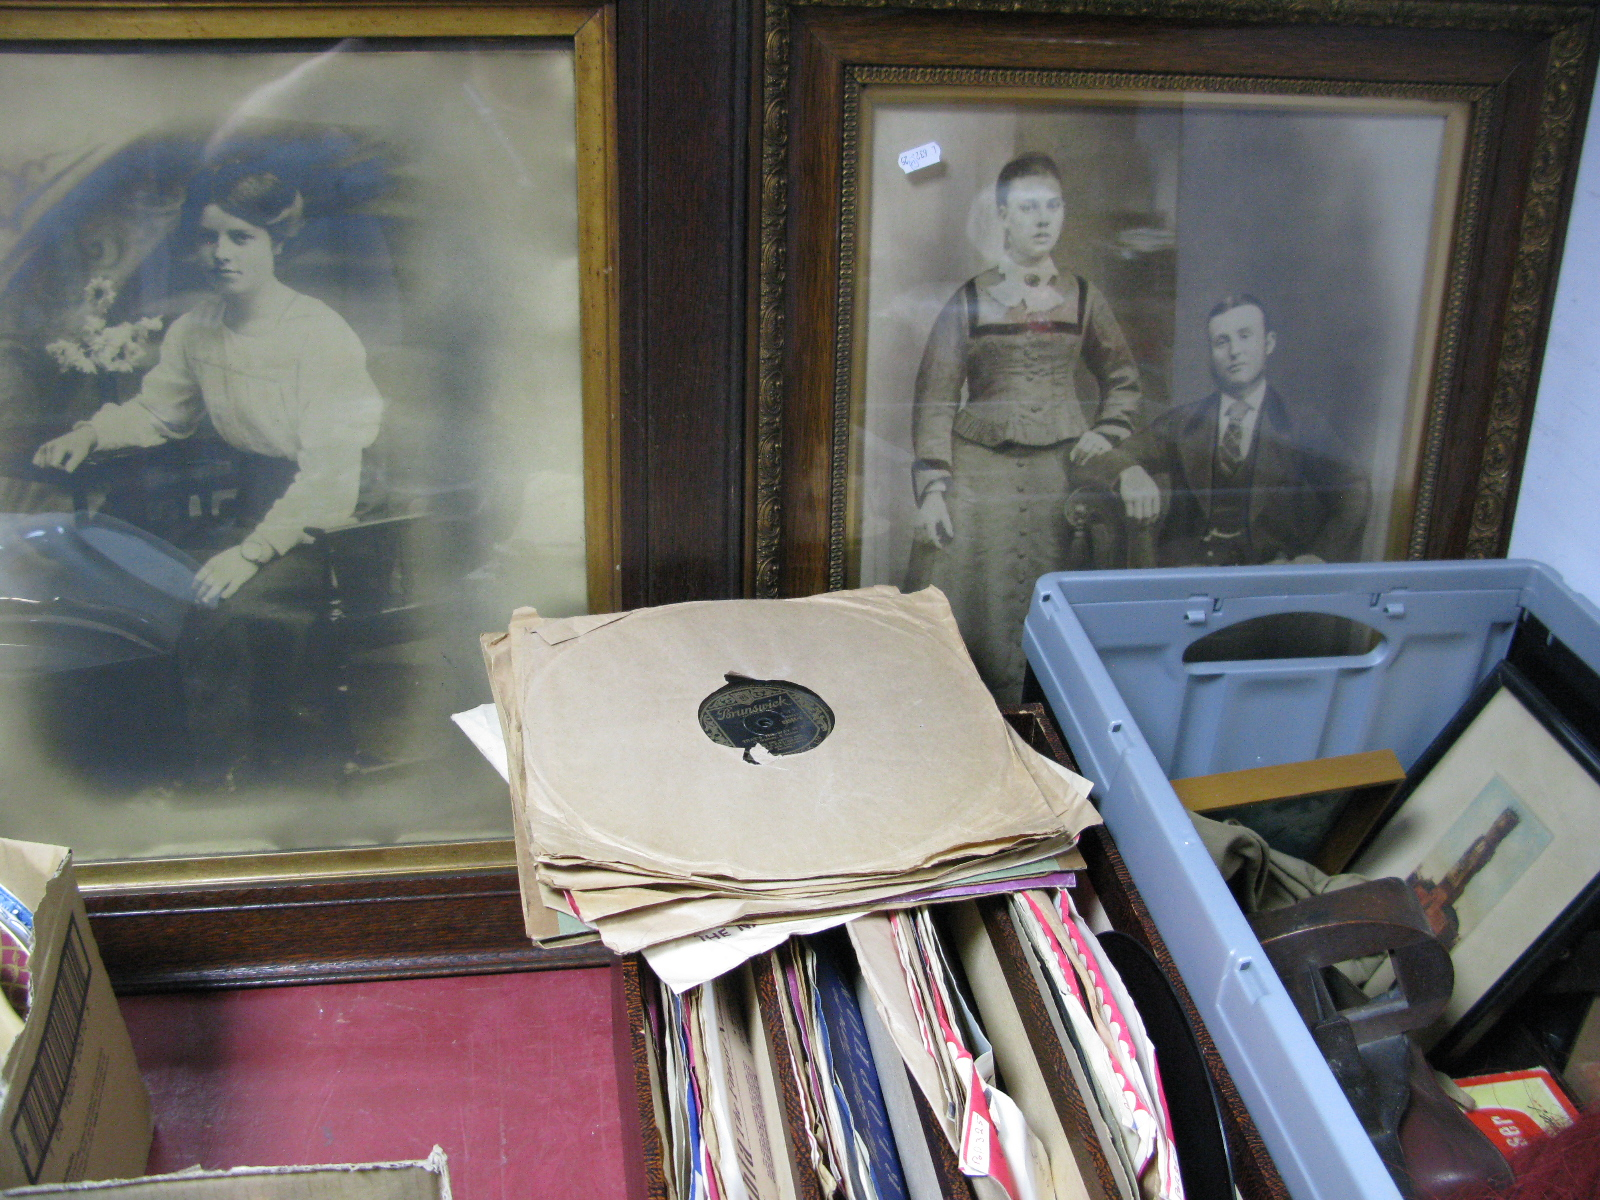 Lot 1044 - An 'Aquatania' Liner Picture, gents shoes, clock weight, records, two family prints, etc.